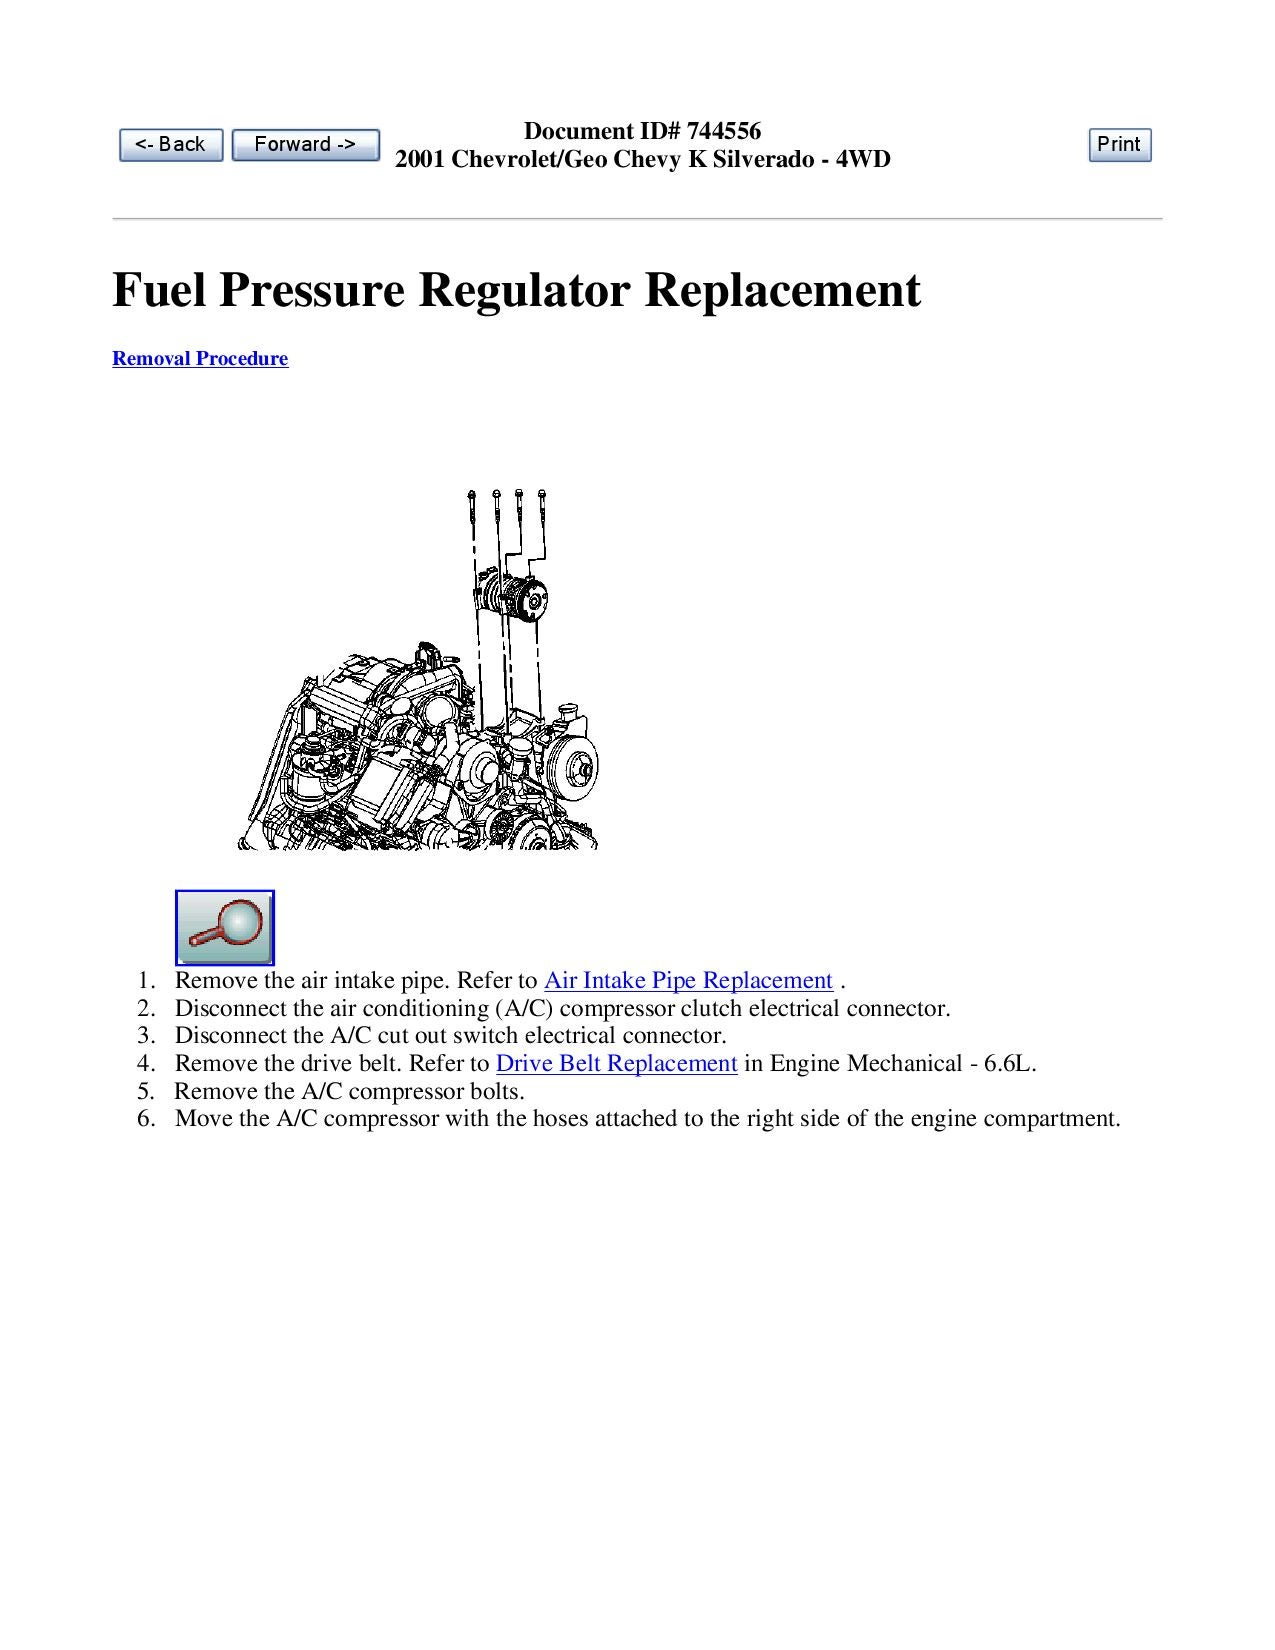 Duramax Fuel Pressure Regulator Valve Replacement Guide By Diesel To 7 Pole Wiring Diagram Bombers Issuu